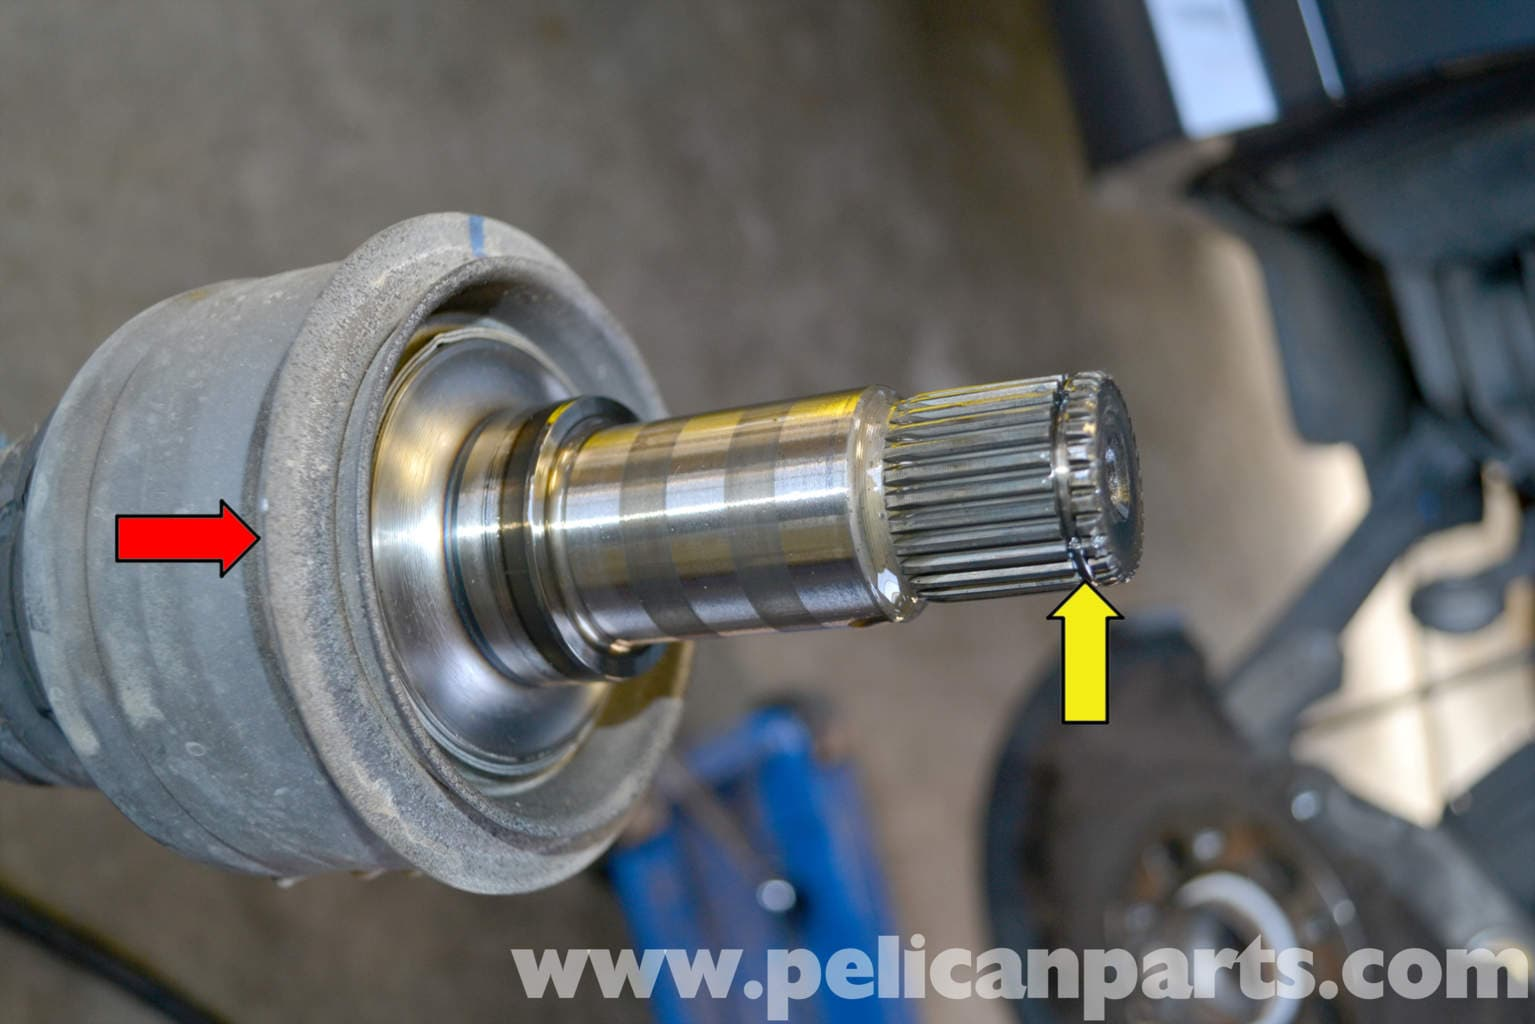 Mercedes Benz W204 Axle Replacement 2008 2014 C250